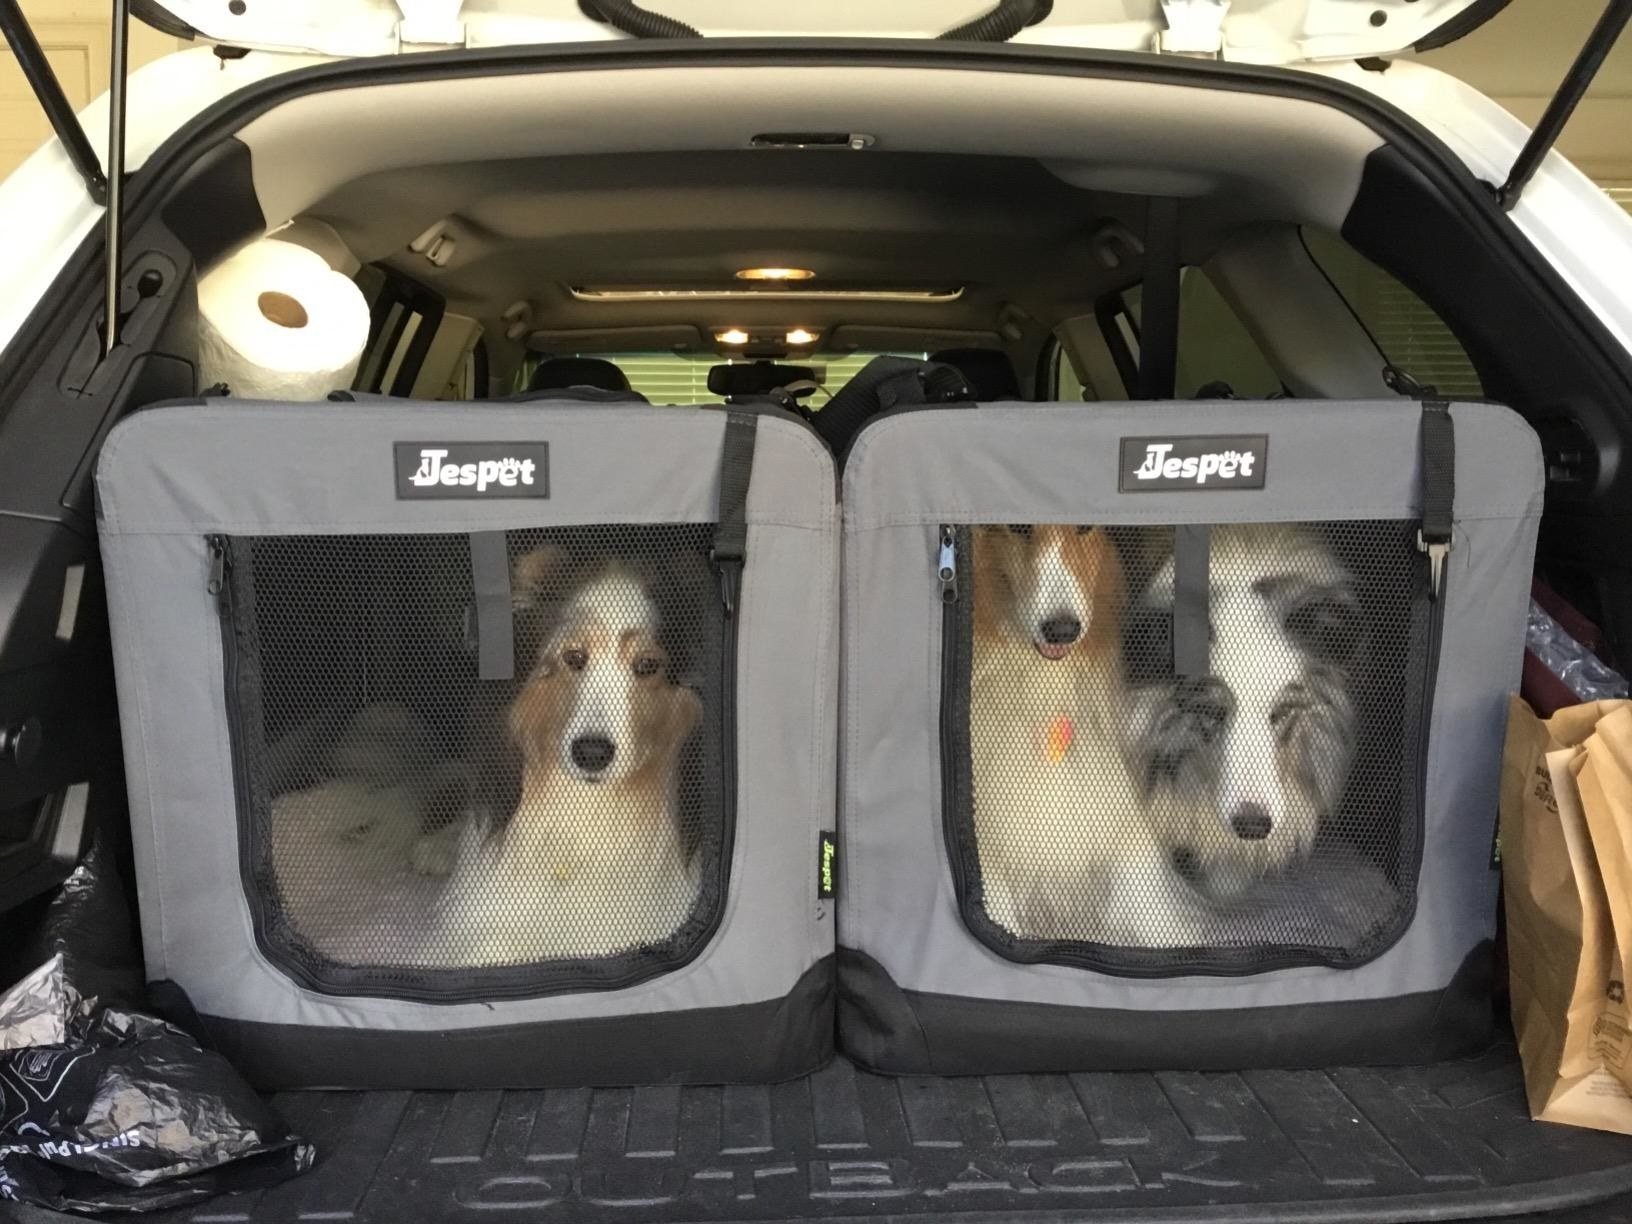 Two gray crates with mesh windows in back of car with three dogs inside